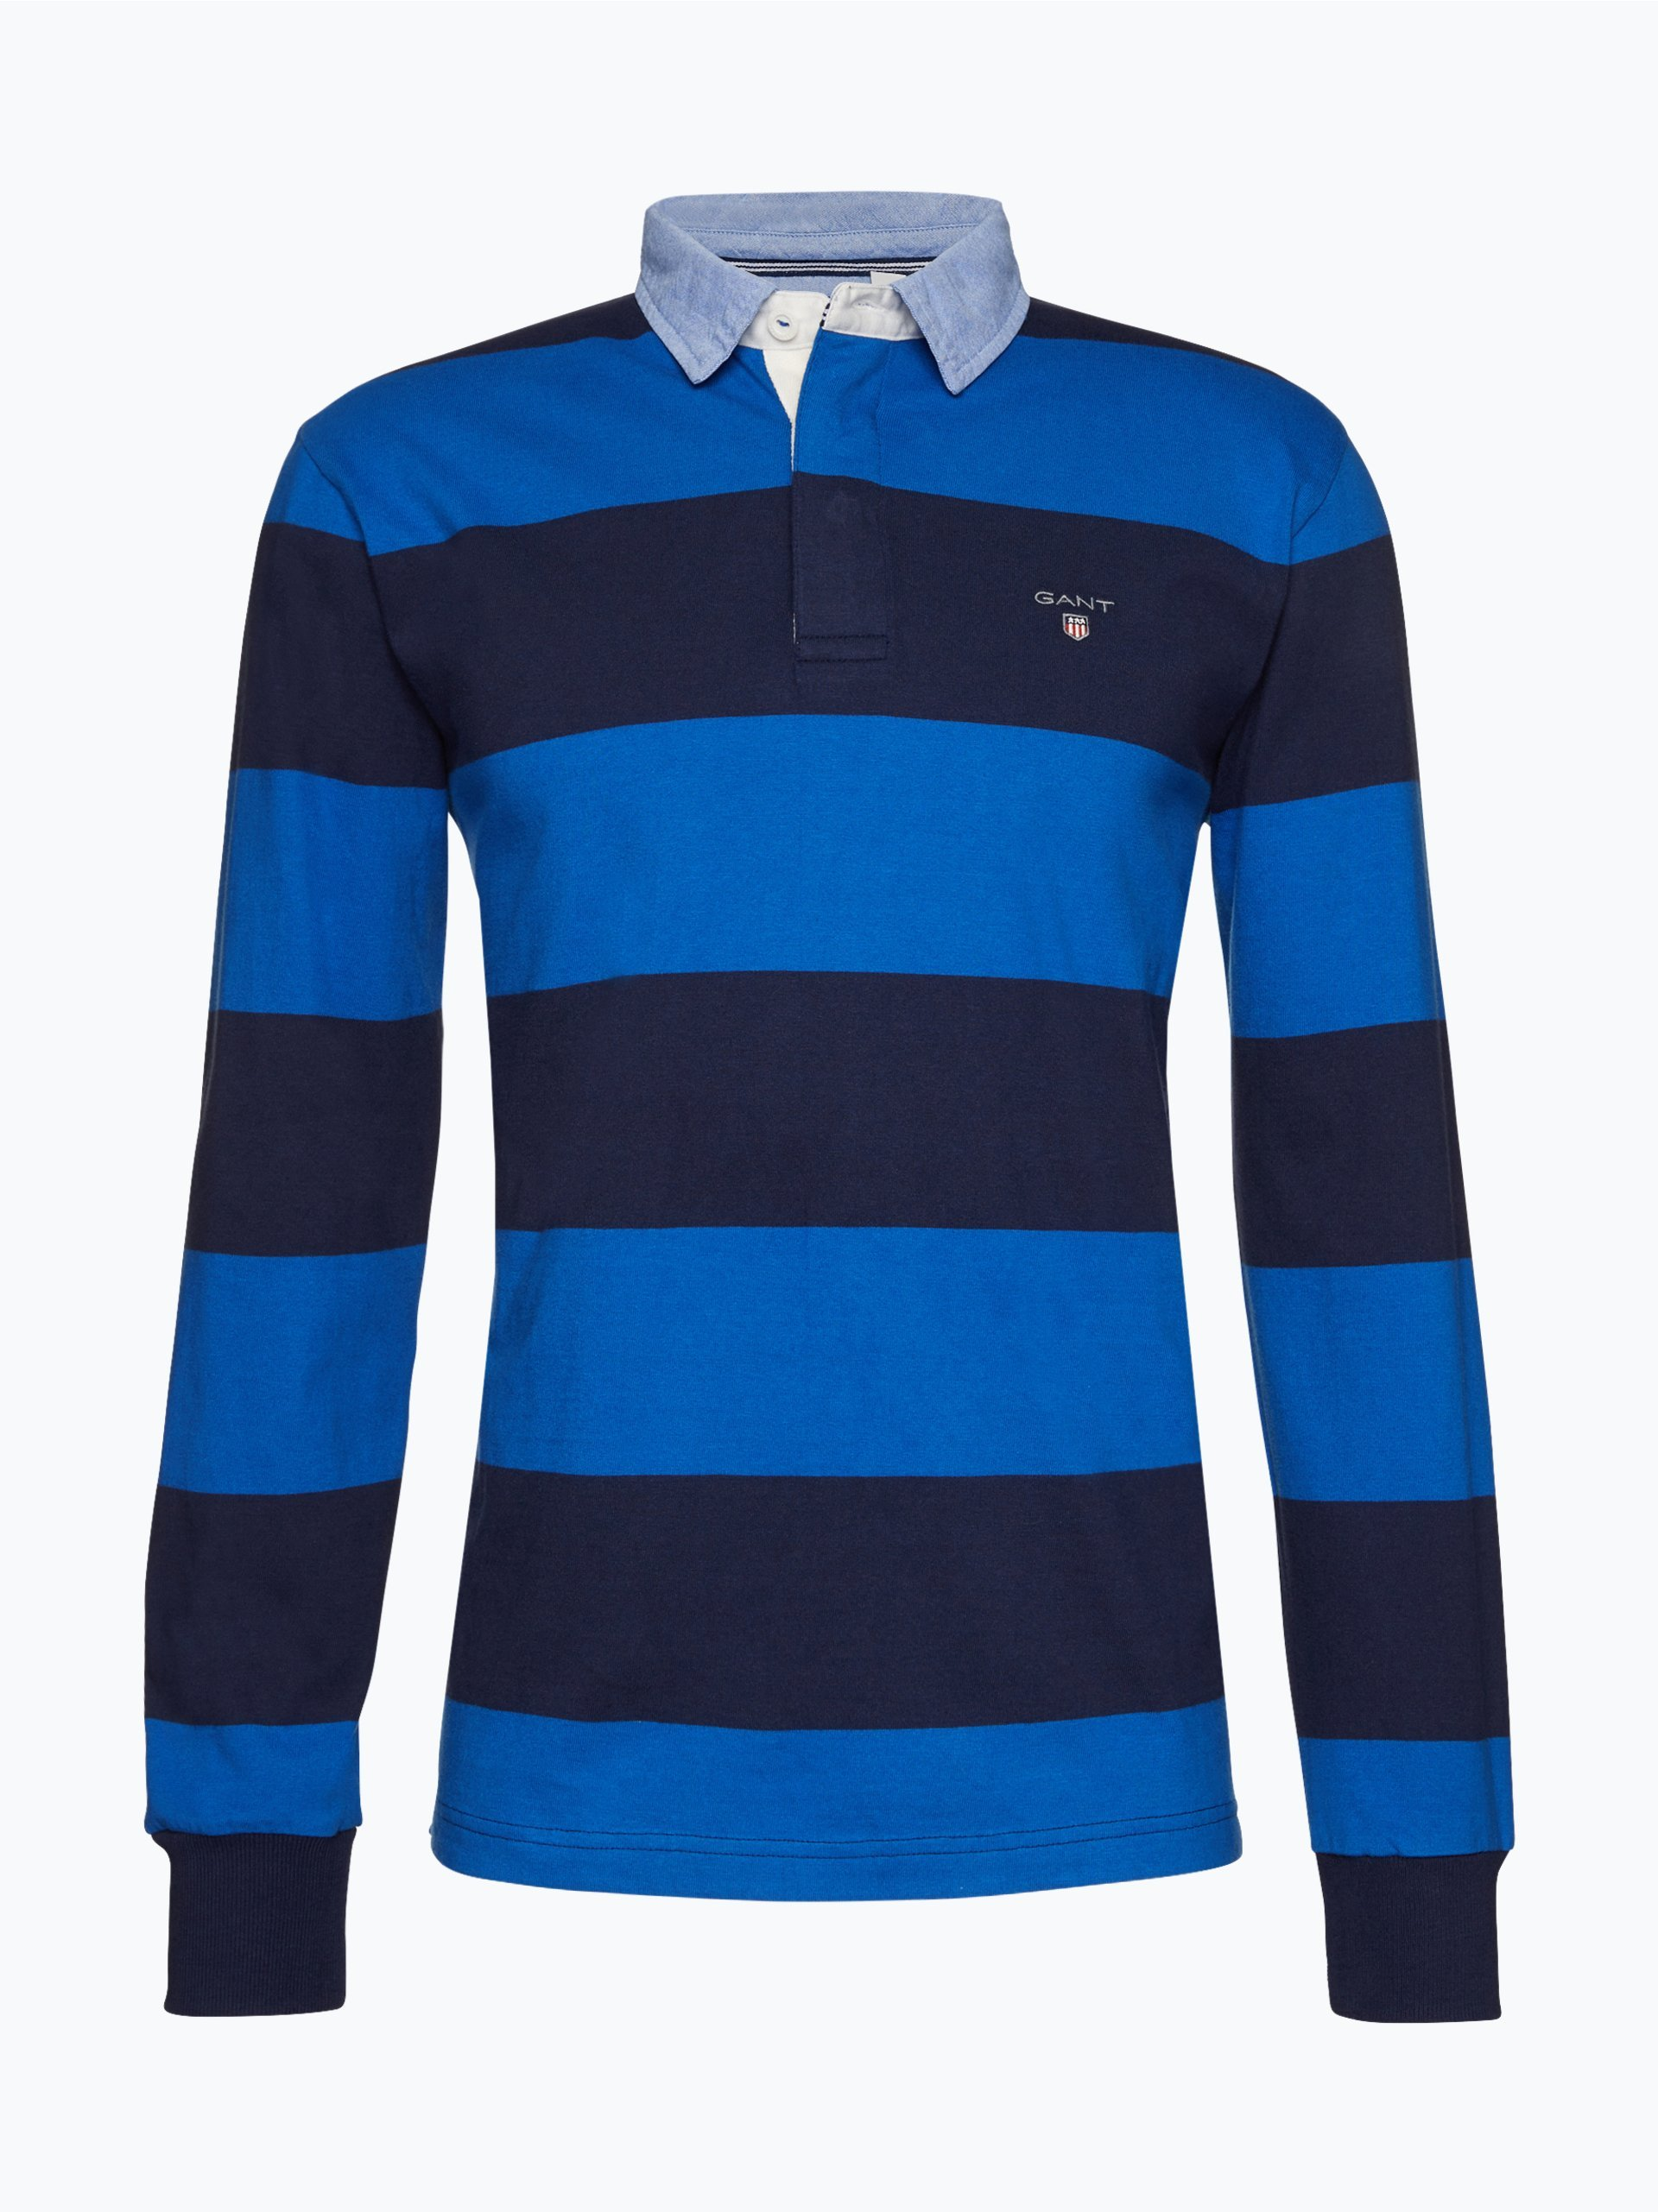 gant herren rugbyshirt royal gestreift online kaufen peek und cloppenburg de. Black Bedroom Furniture Sets. Home Design Ideas